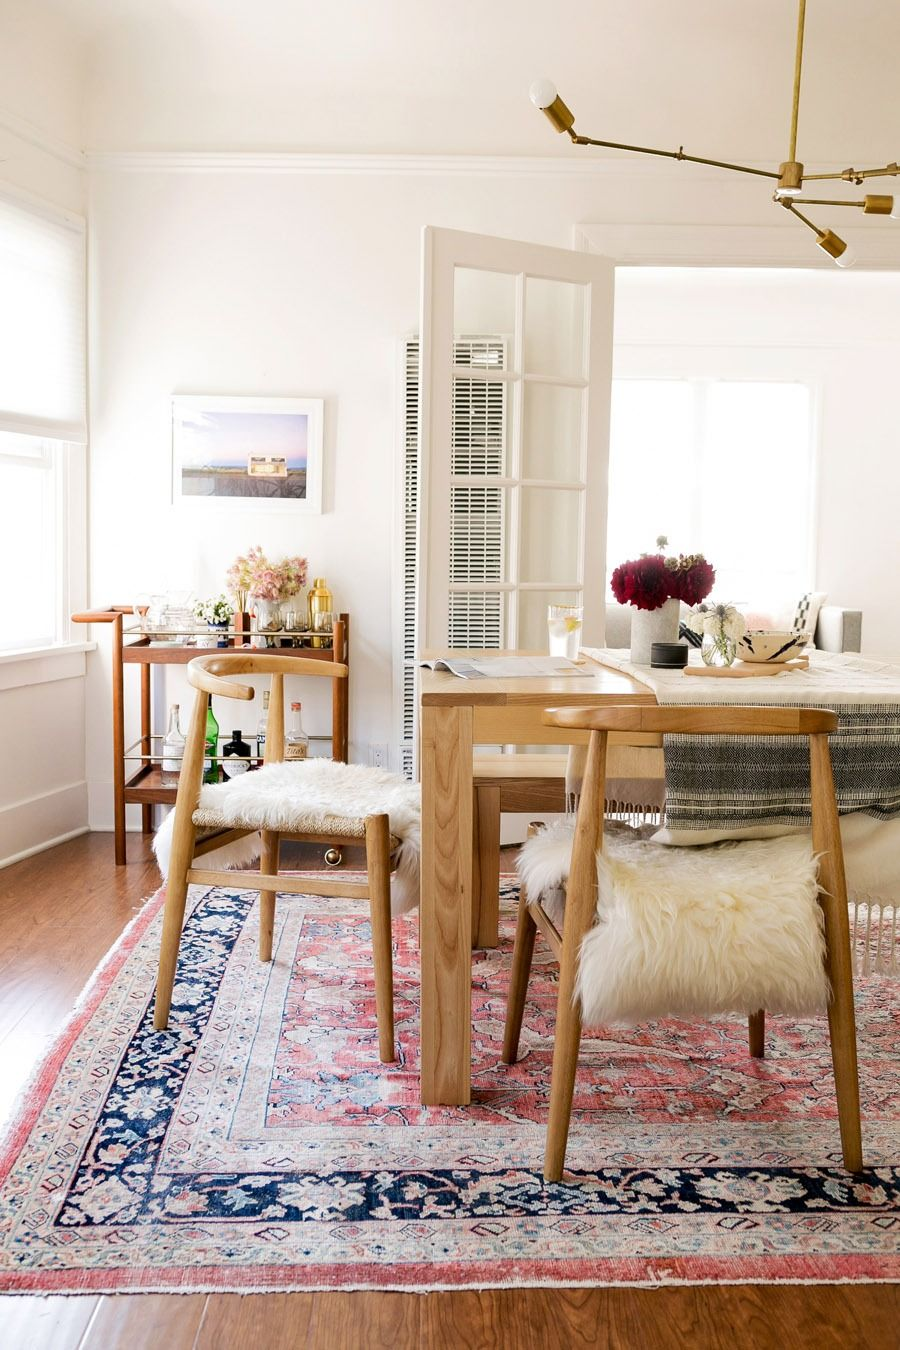 John vogel chairs from west elm sheepskin create a modern bohemian dining room in this photographers los angeles home